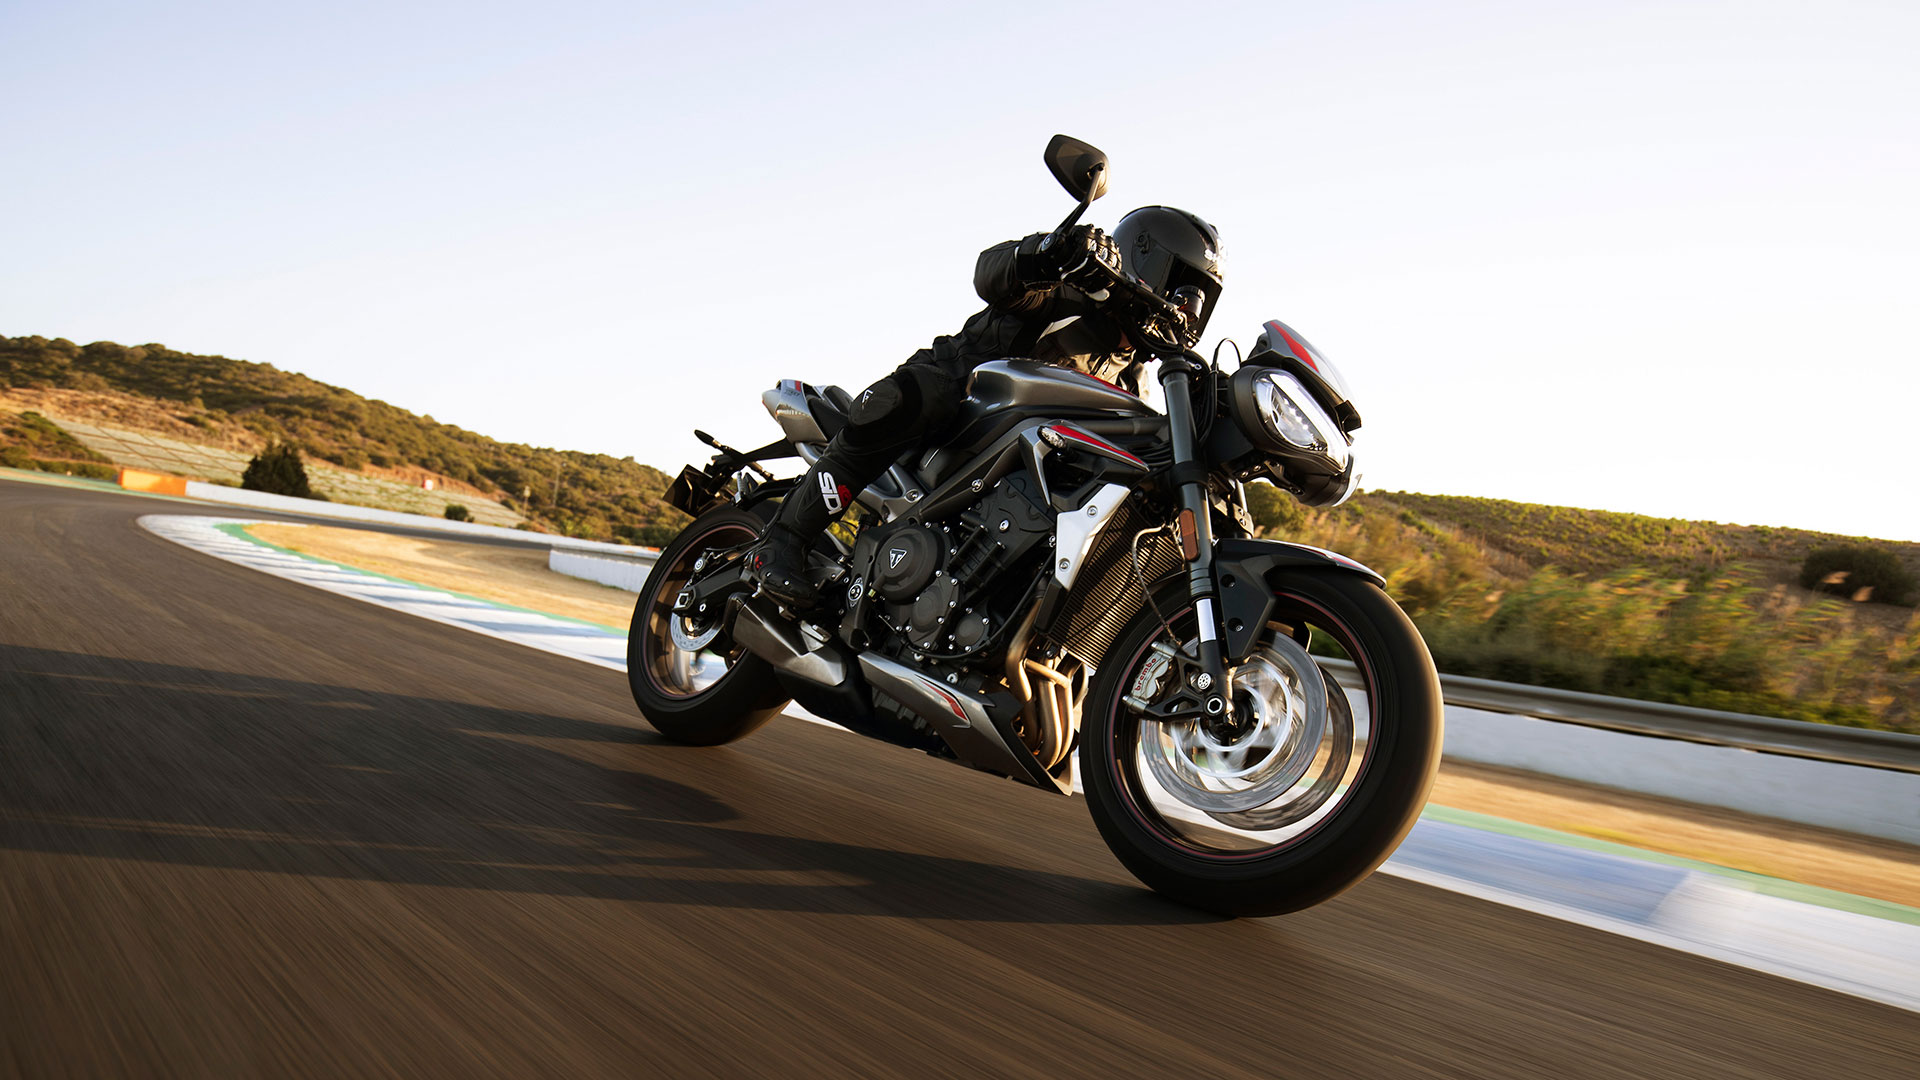 New Triumph Street Triple RS in Silver Ice powering down a racetrack